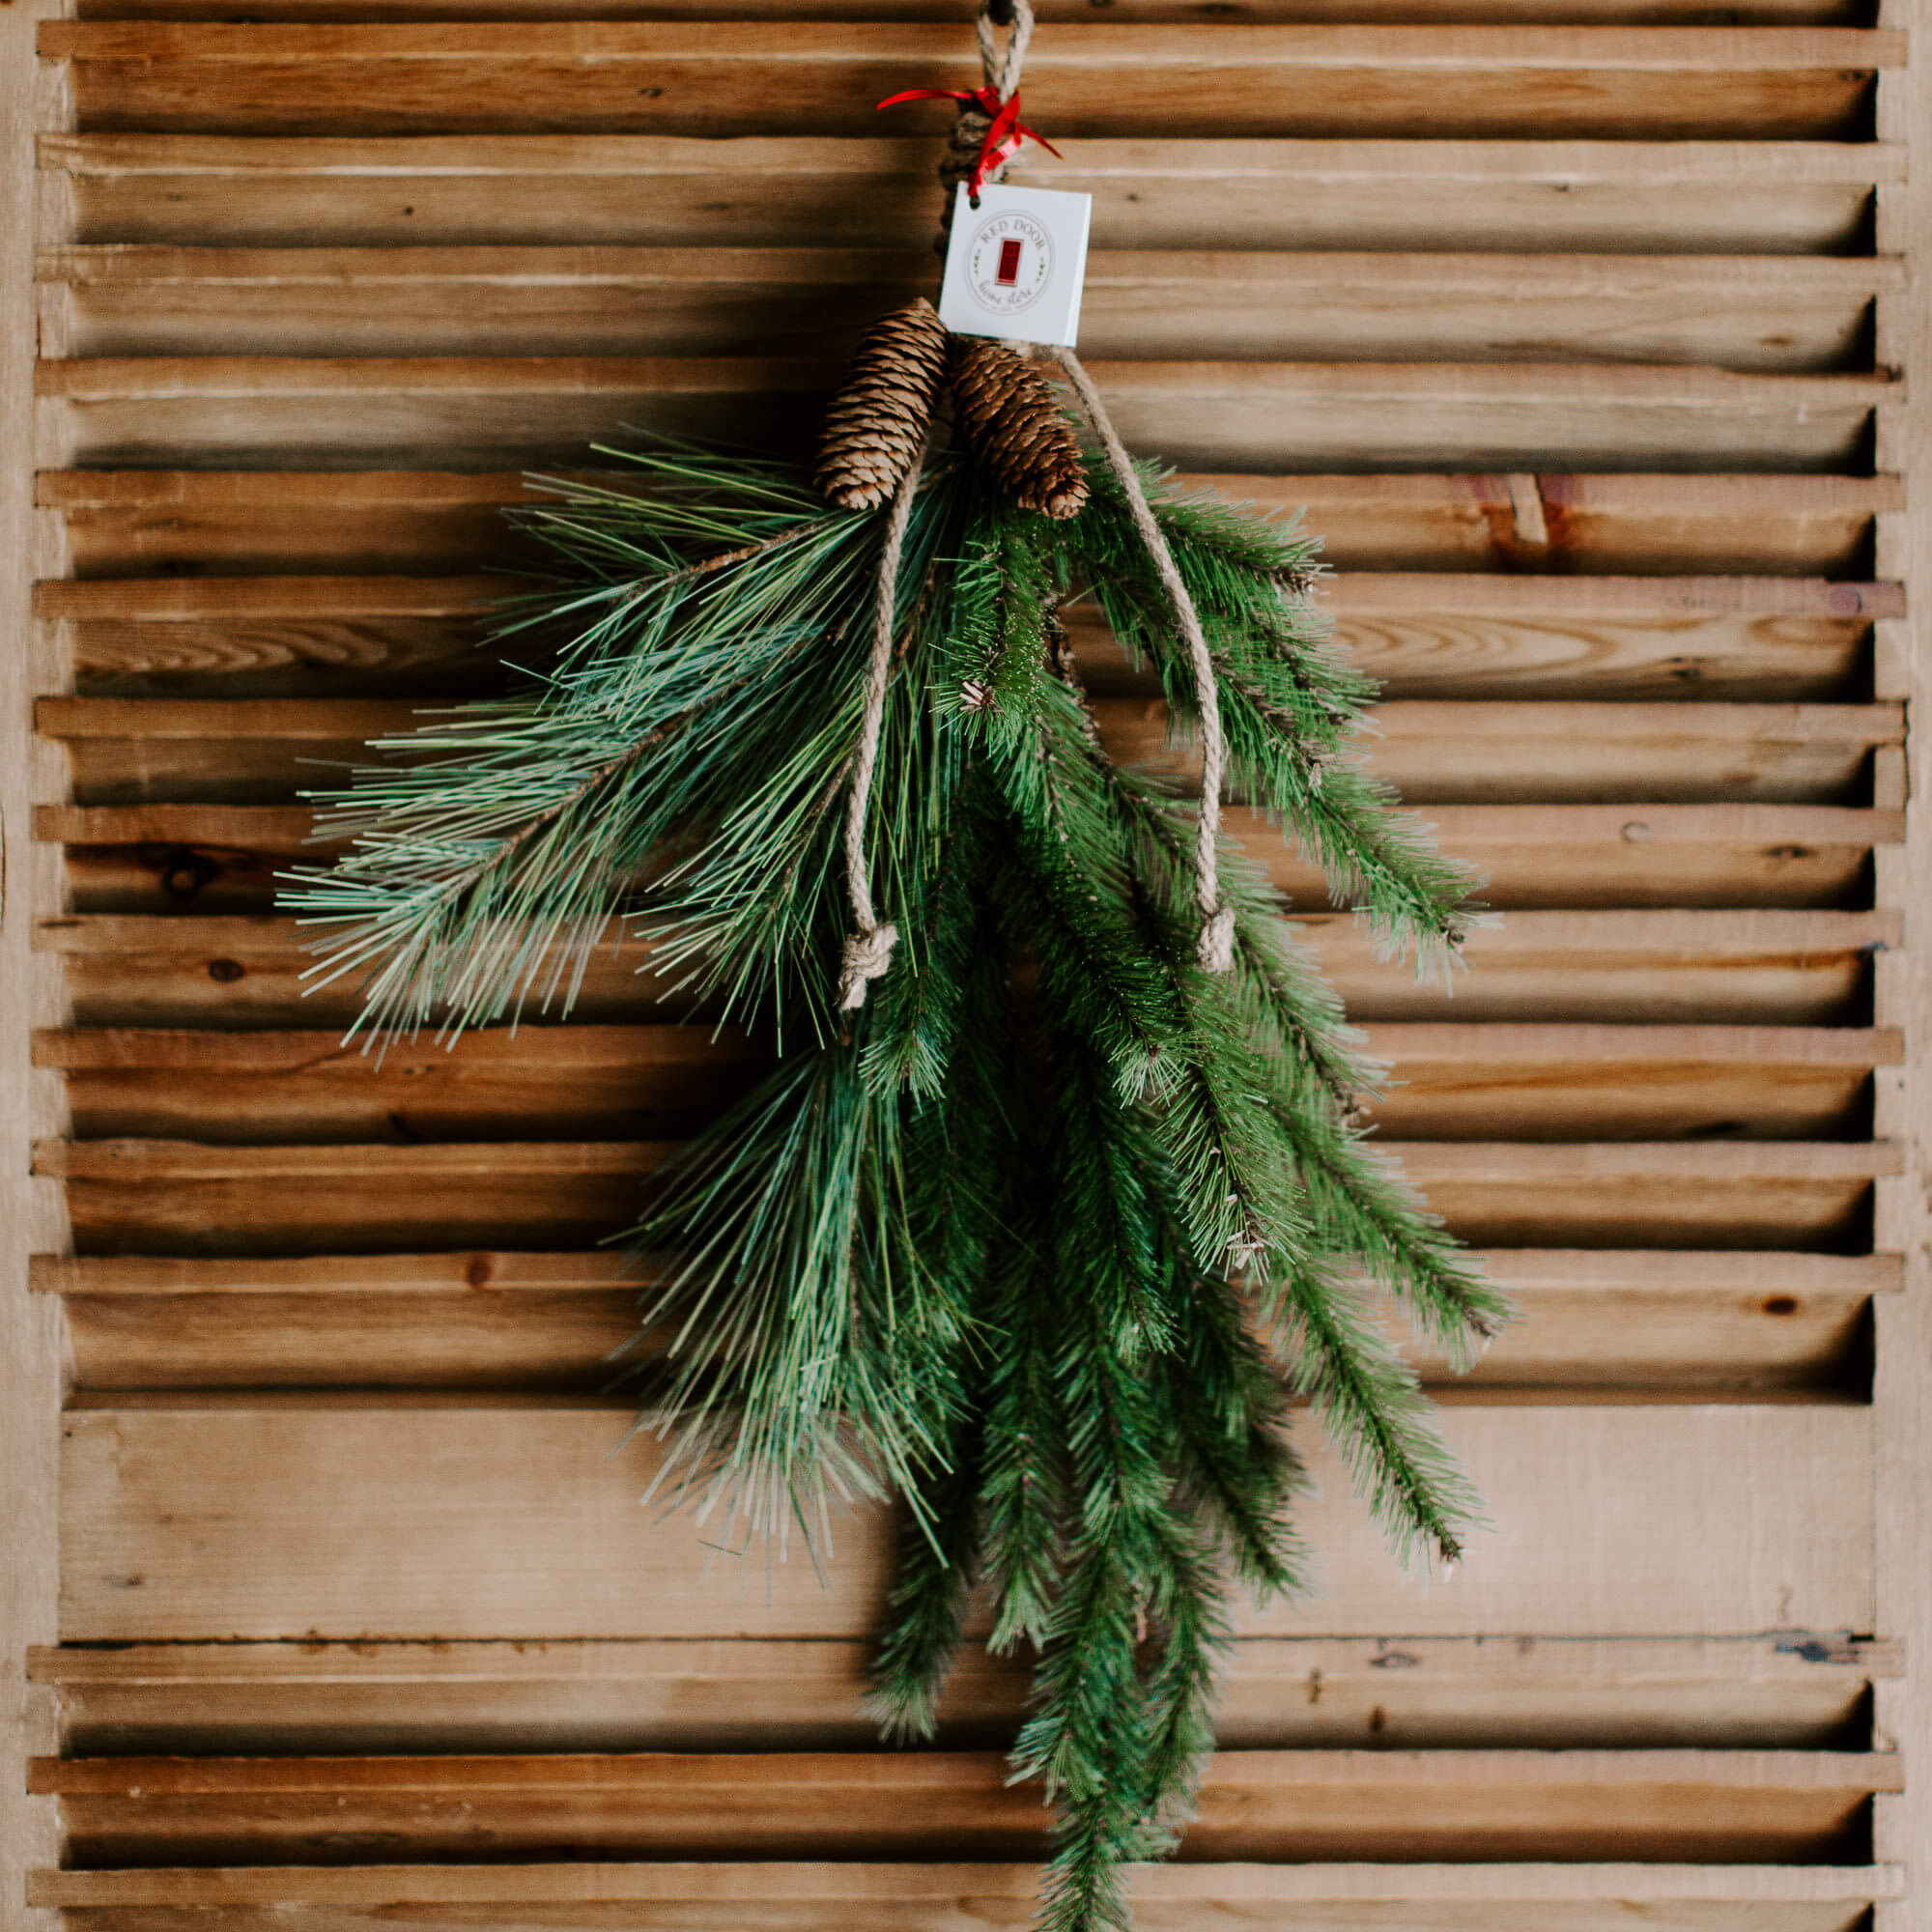 A 28 inch long faux pine swag with a mix of long and short pine needles, tied at the top with a natural twine and 2 pinecones hung on a front door for winter decorating